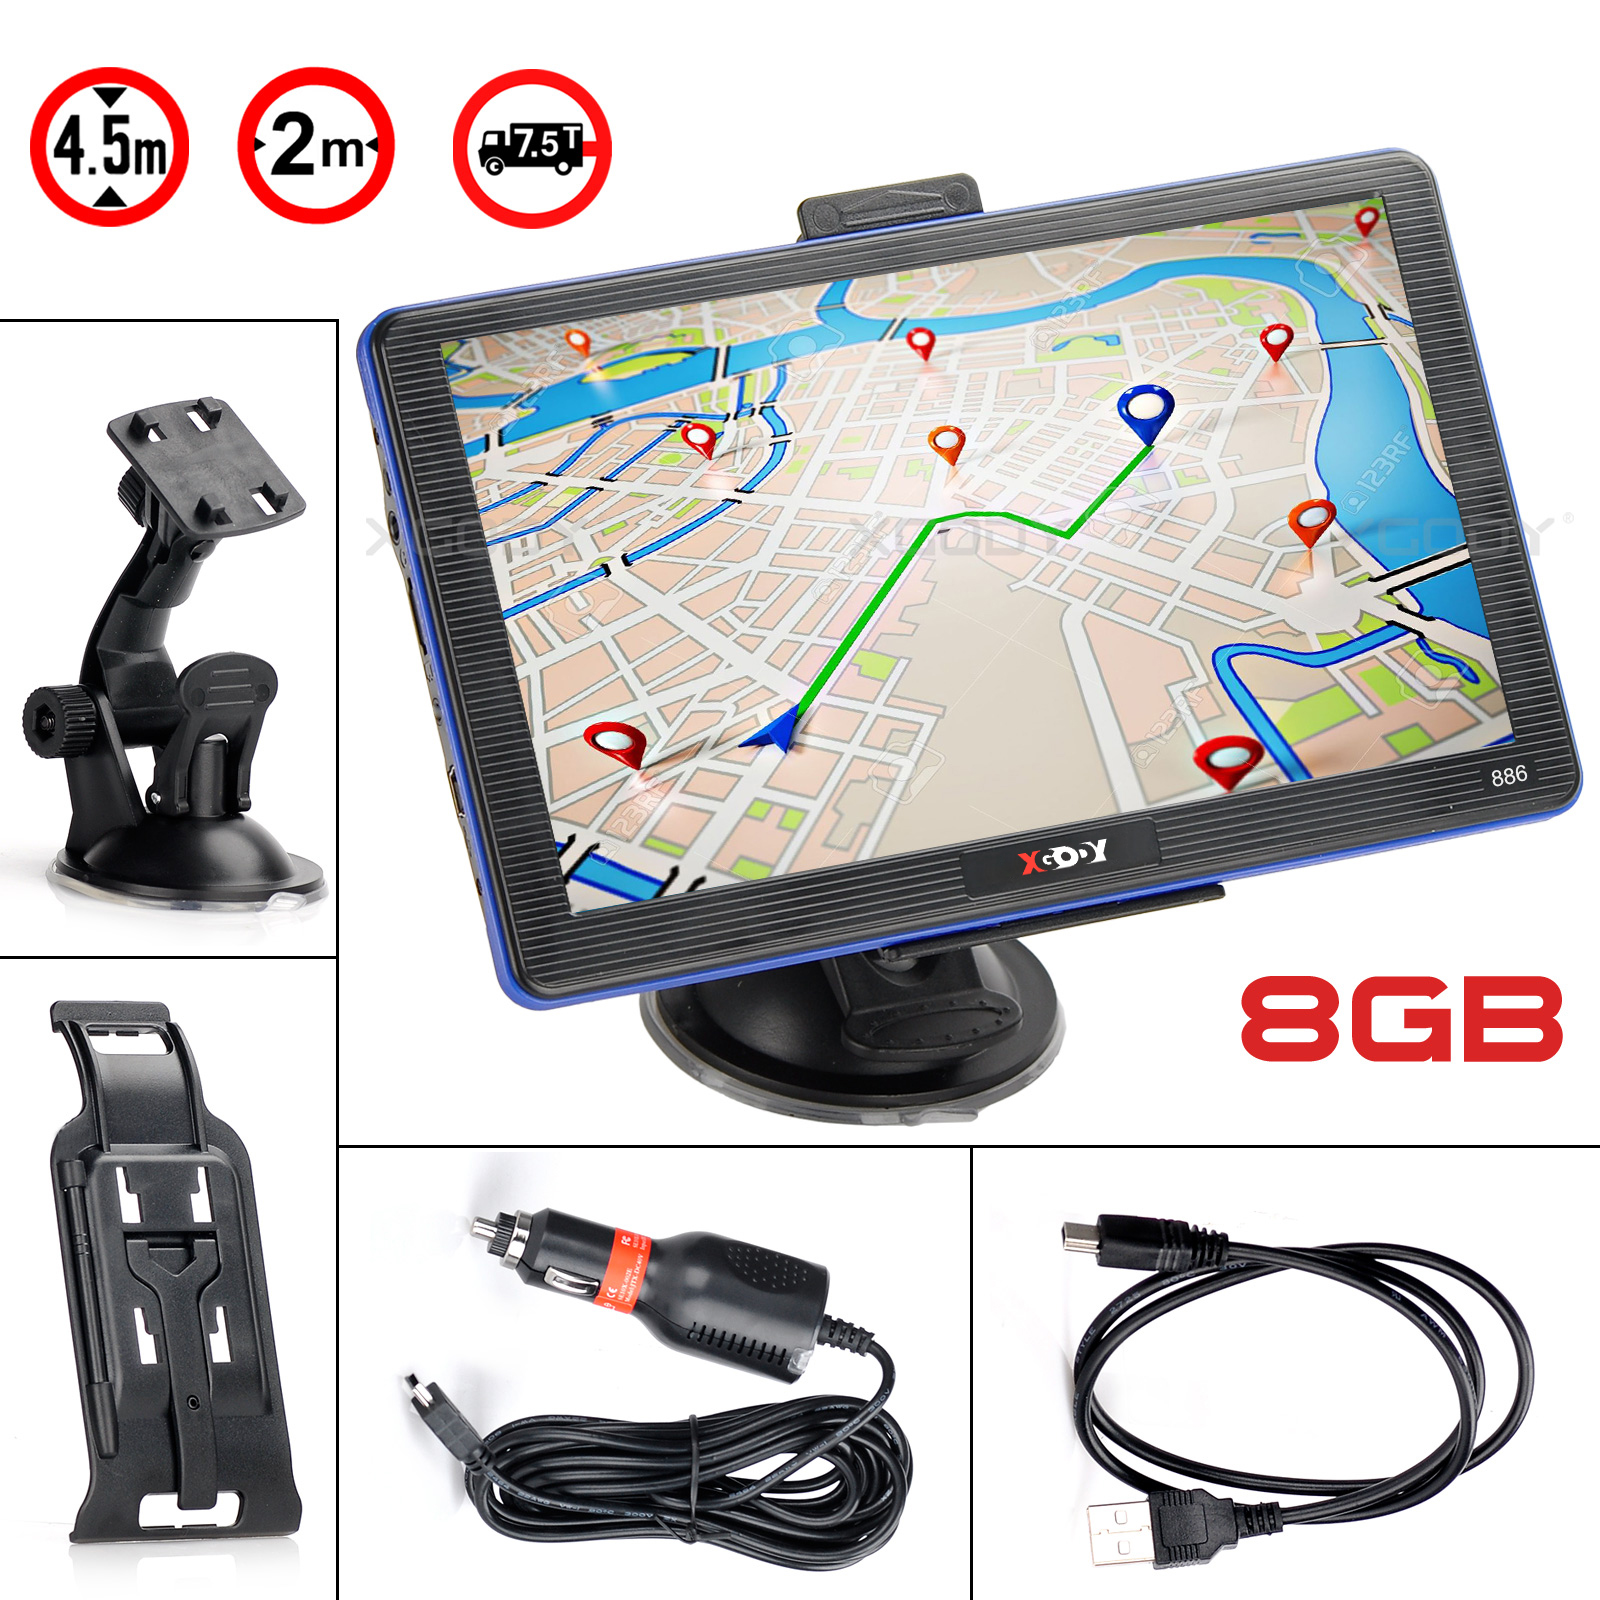 XGODY 886 7'' Truck Car GPS Navigation 256M+8GB Capacitive Screen Navigator Bluetooth Hands Free Call Optional France 2019 Map